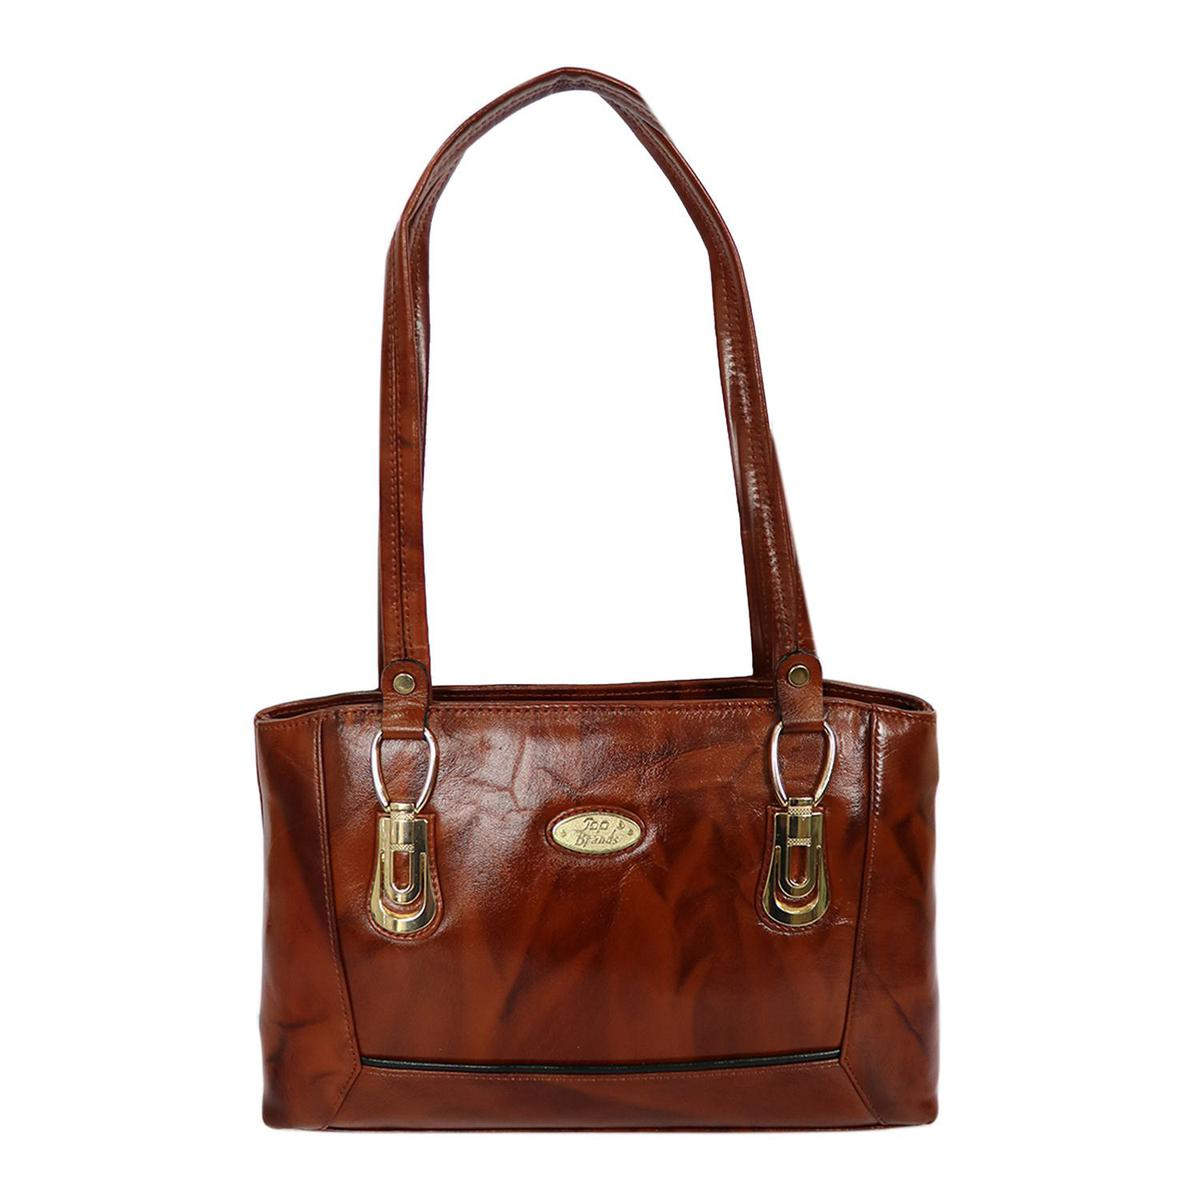 Lelys - Stylish Diva Hand Bag With Pure Leather For Ladies - Brown